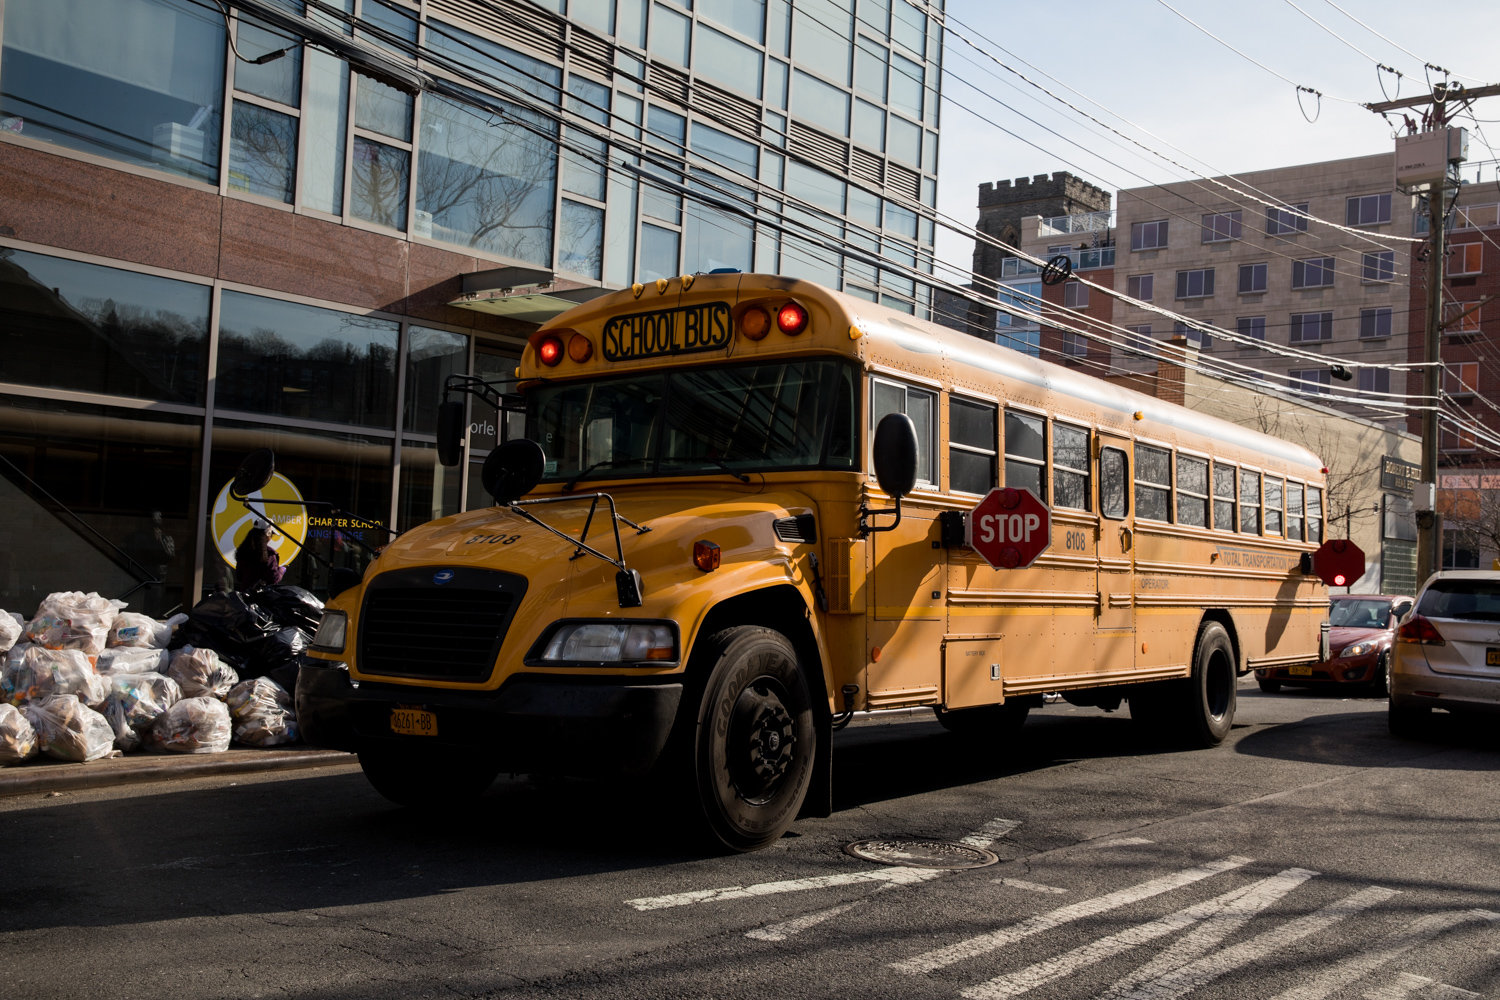 Parents may soon have to find alternative means of getting their children to school, if Amber Charter moves forward with plans to discontinue bus service.